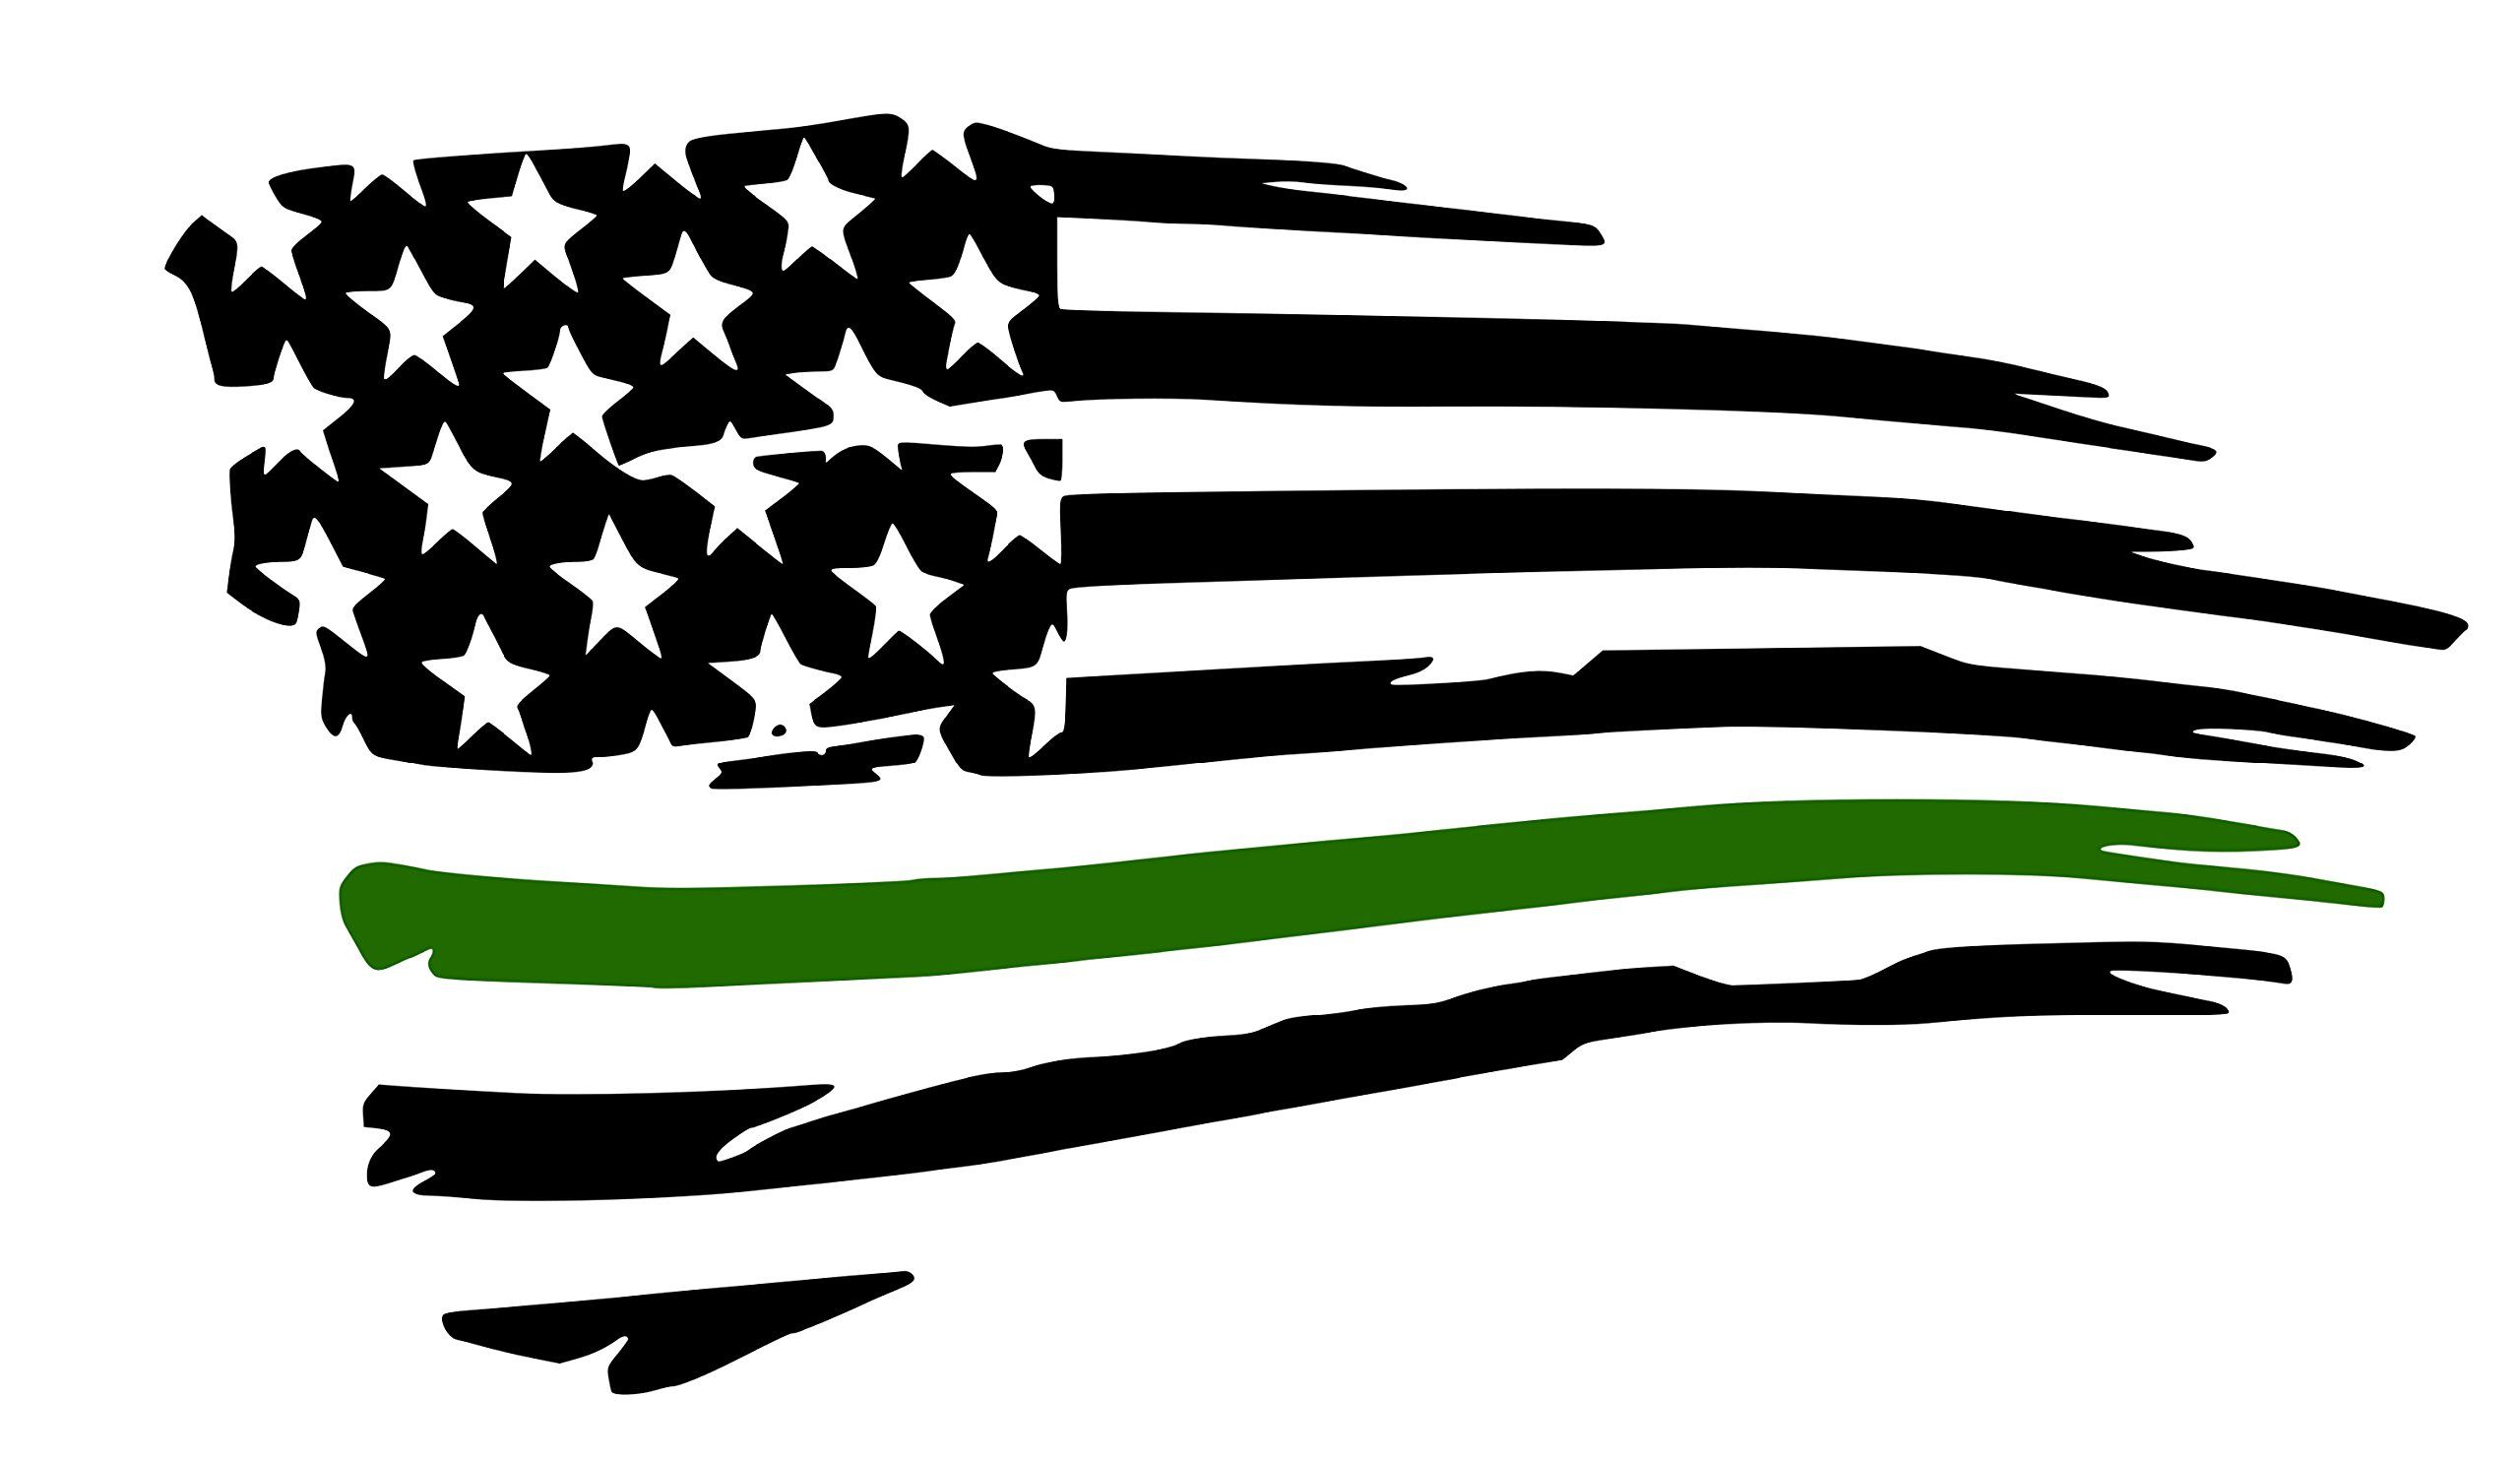 Tattered sign on a wood stick clipart clip art transparent download Army Tattered Flag Decal- Military Pride. Show your love and ... clip art transparent download